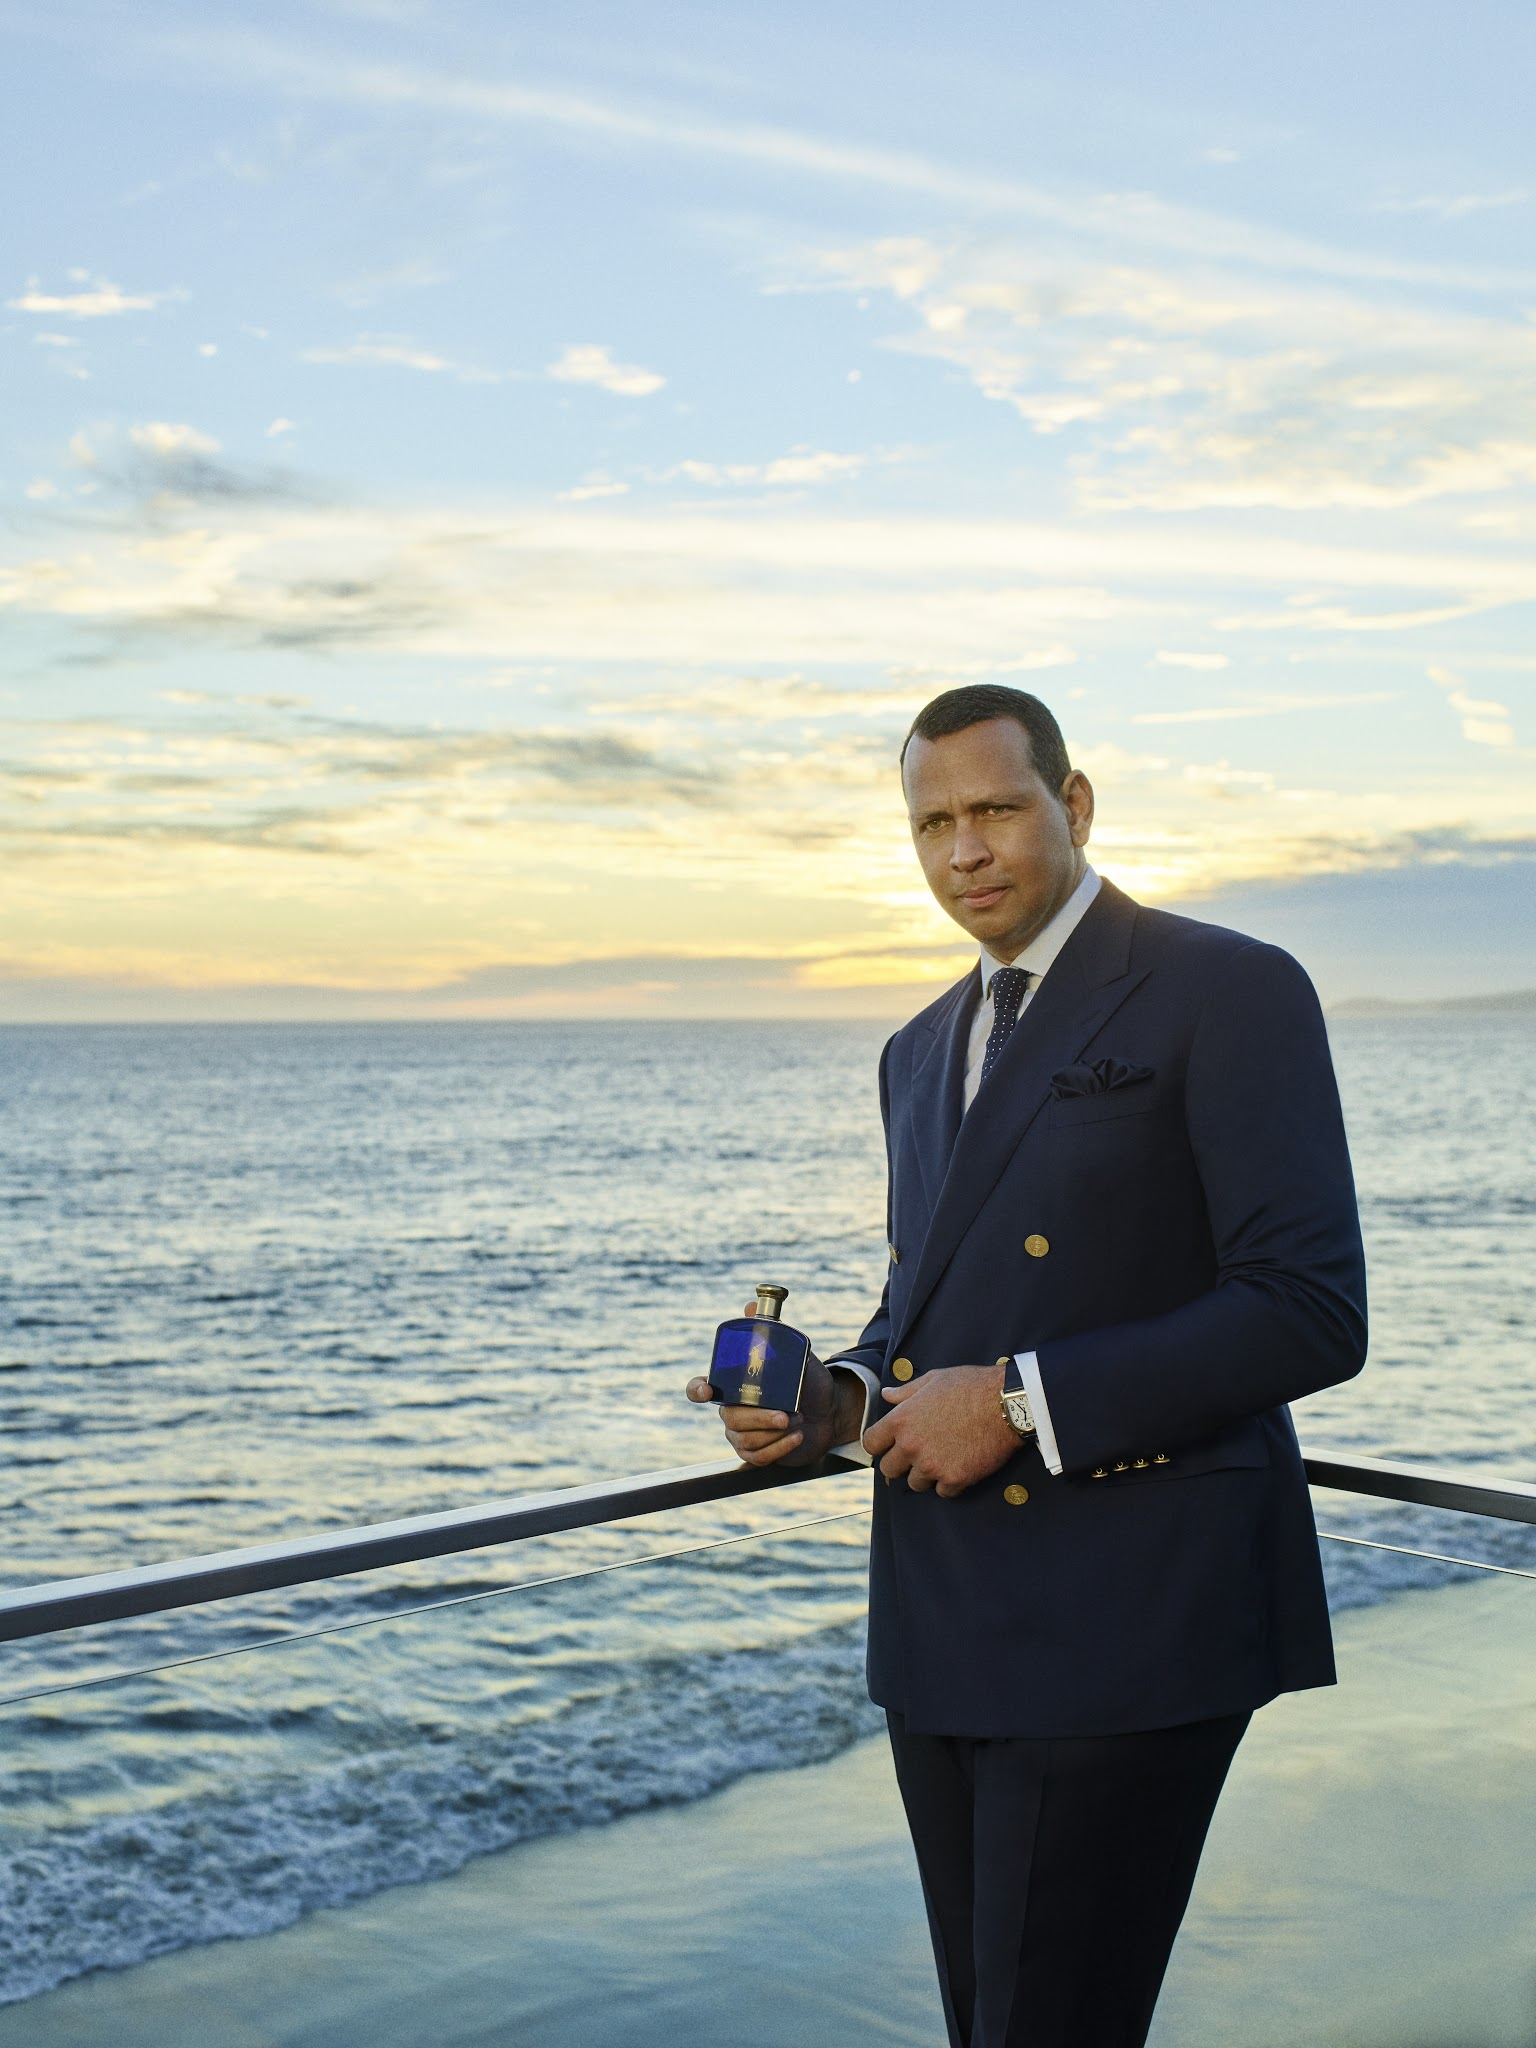 """I've always admired the Ralph Lauren brand. Since I was young, I've seen it as timeless and aspirational – and the fragrances have been nothing short. That's part of the reason this collaboration is so special to me."" - -Alex Rodriguez"